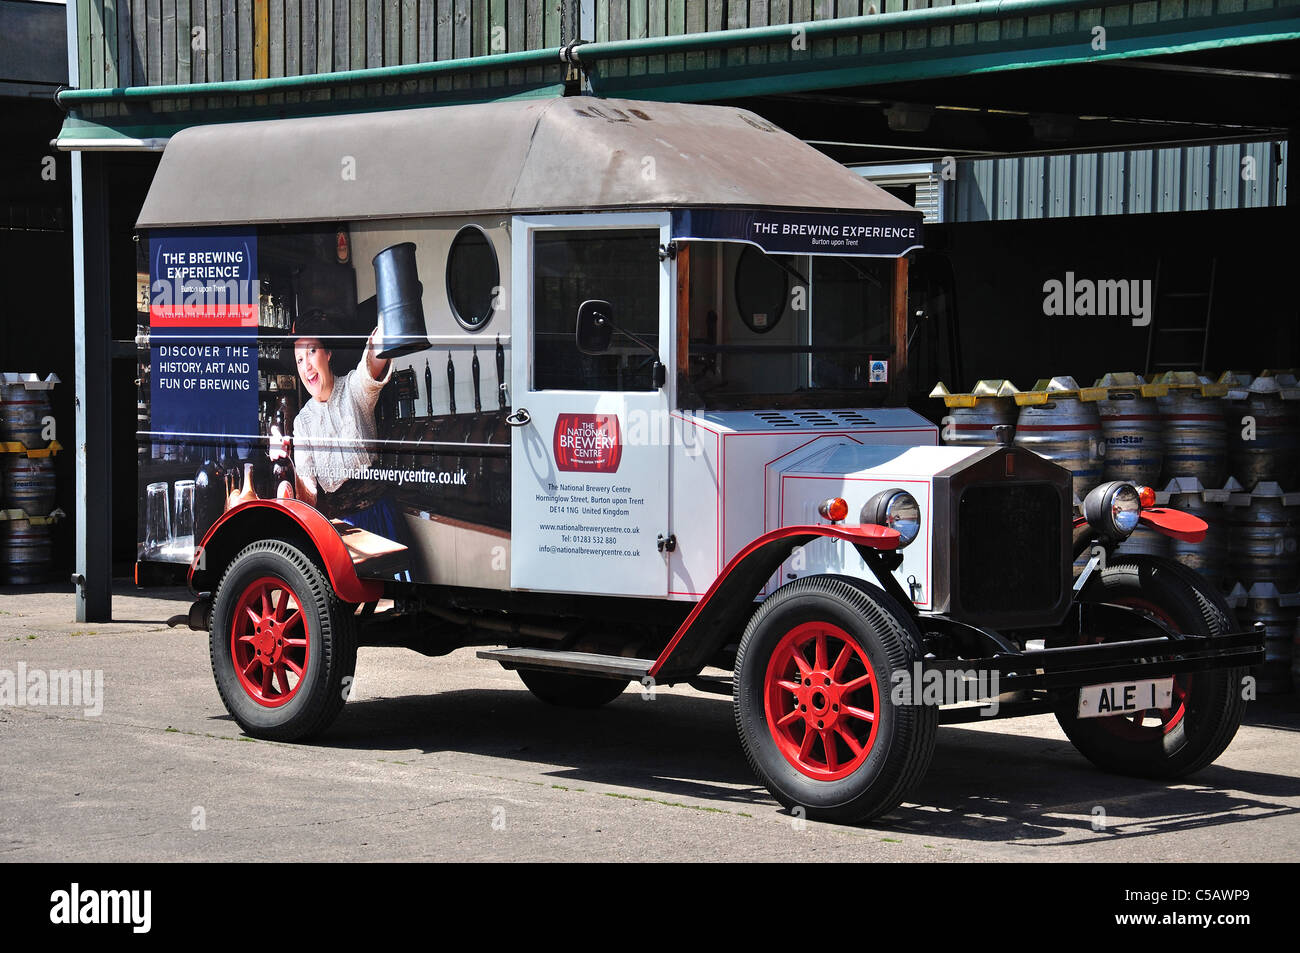 Vintage delivery van, The National Brewery Centre, Horninglow Street, Burton upon Trent, Staffordshire, England, - Stock Image